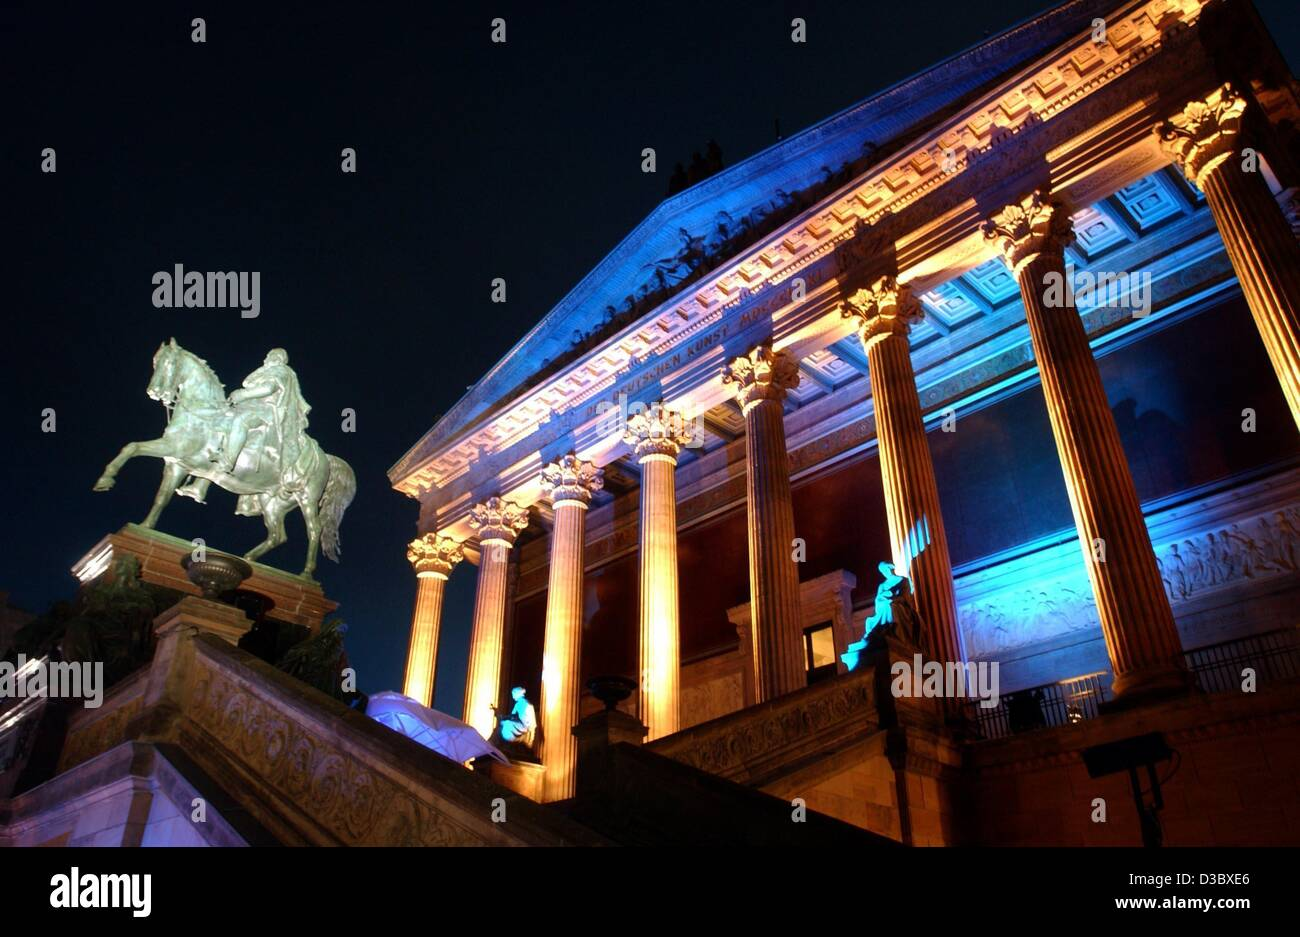 (dpa) - A low angle view towards the illuminated statue of Fredrick William IV and the entrance facade of the Old - Stock Image